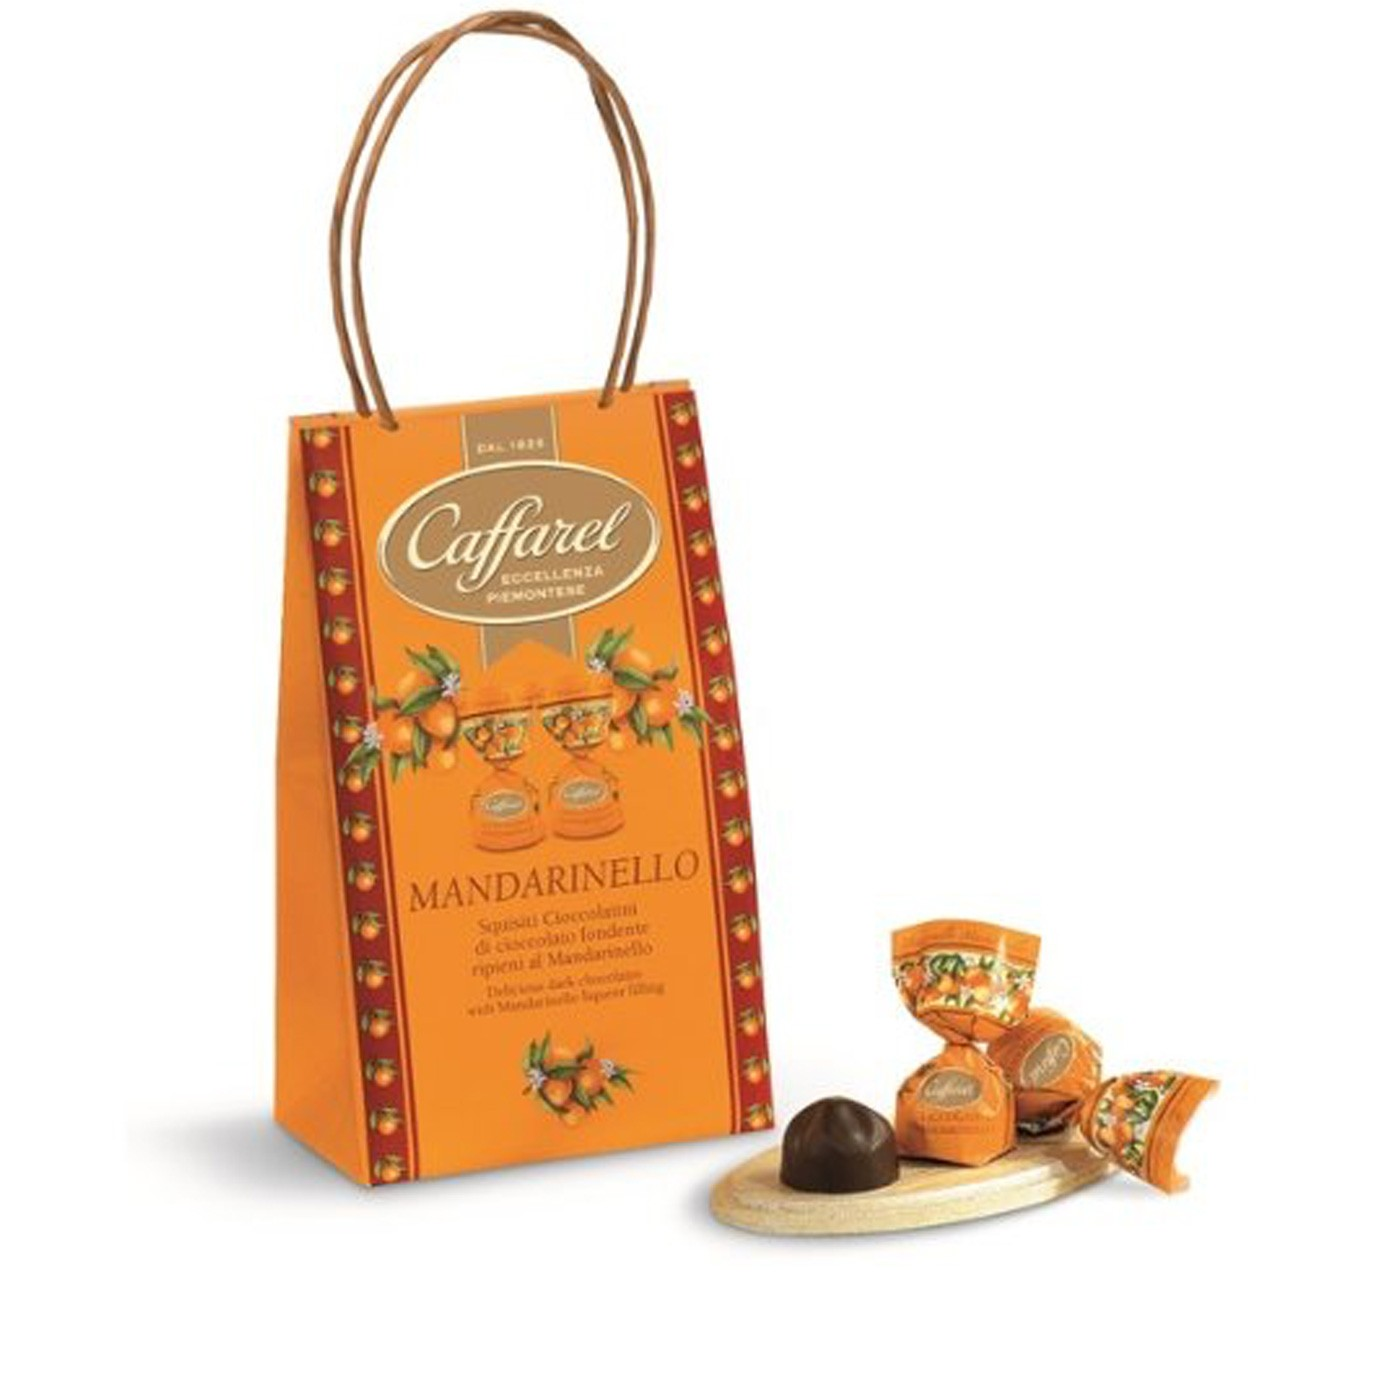 Mandarinello Chocolate Bag 6 oz